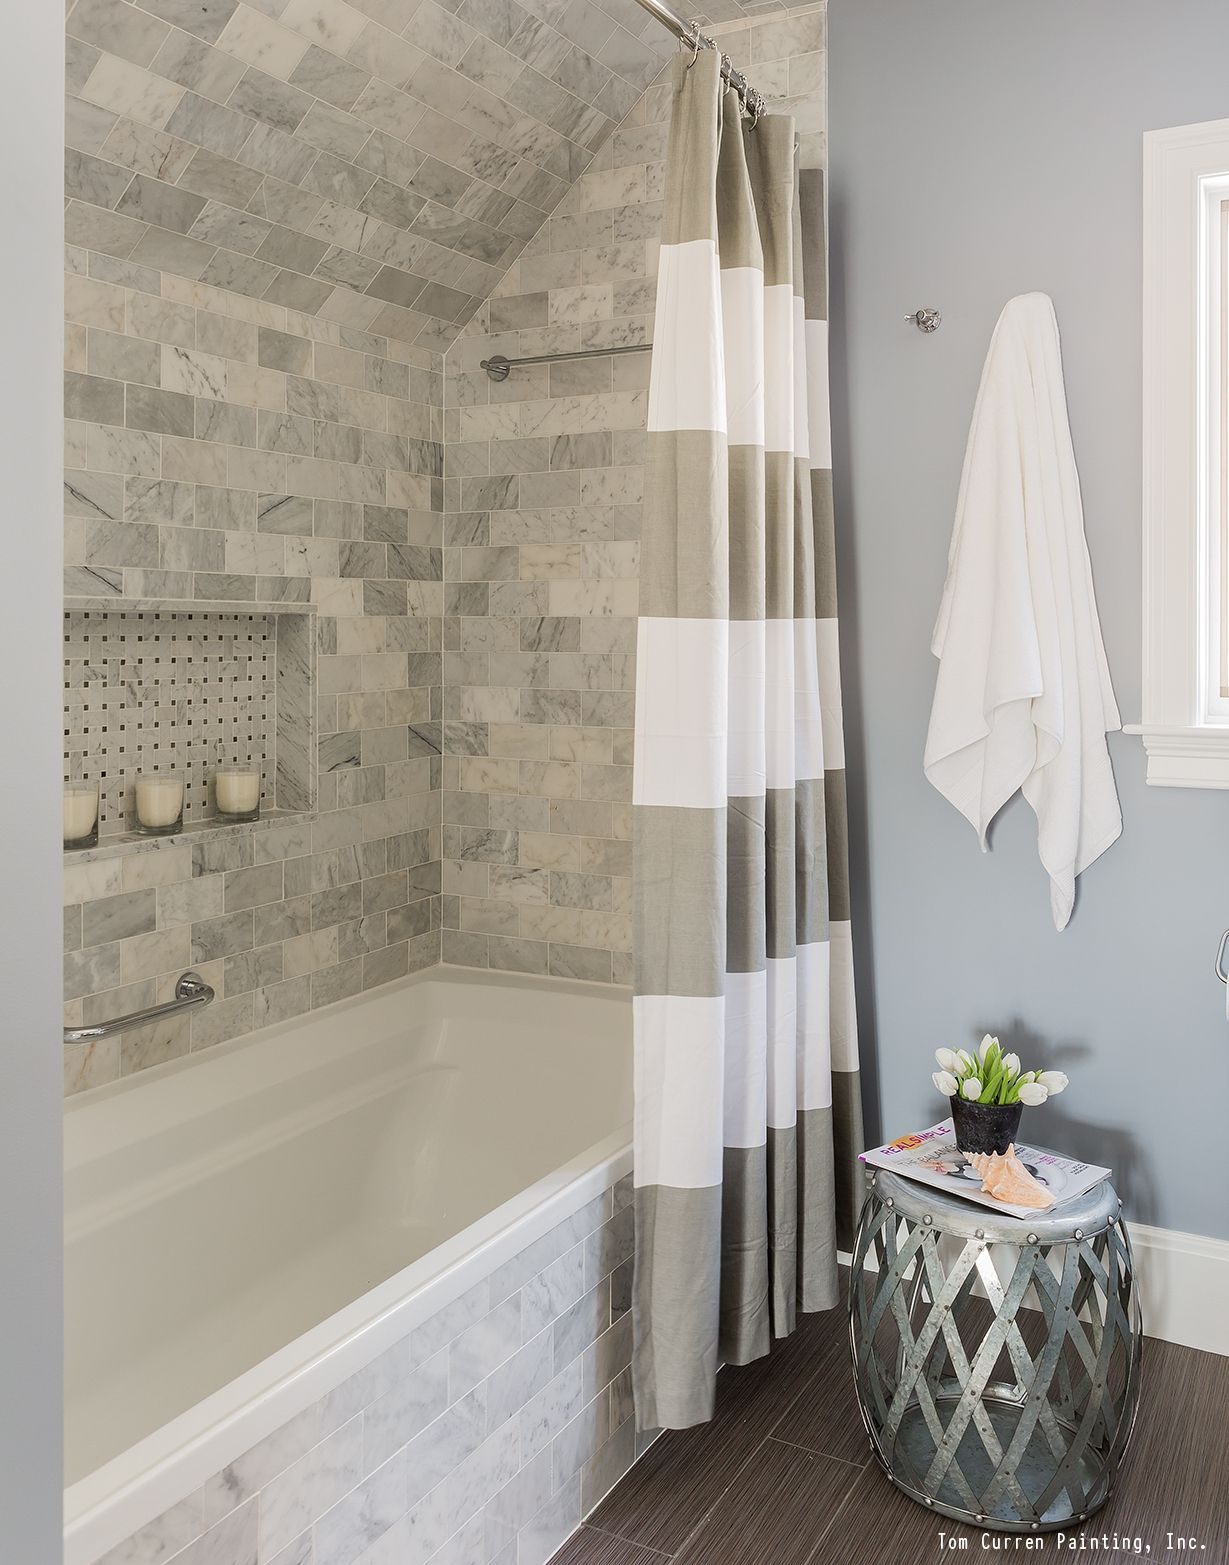 Bathroom Remodel Ideas A Gorgeous Bathroom Remodel With A Tile Shower White Trim And A